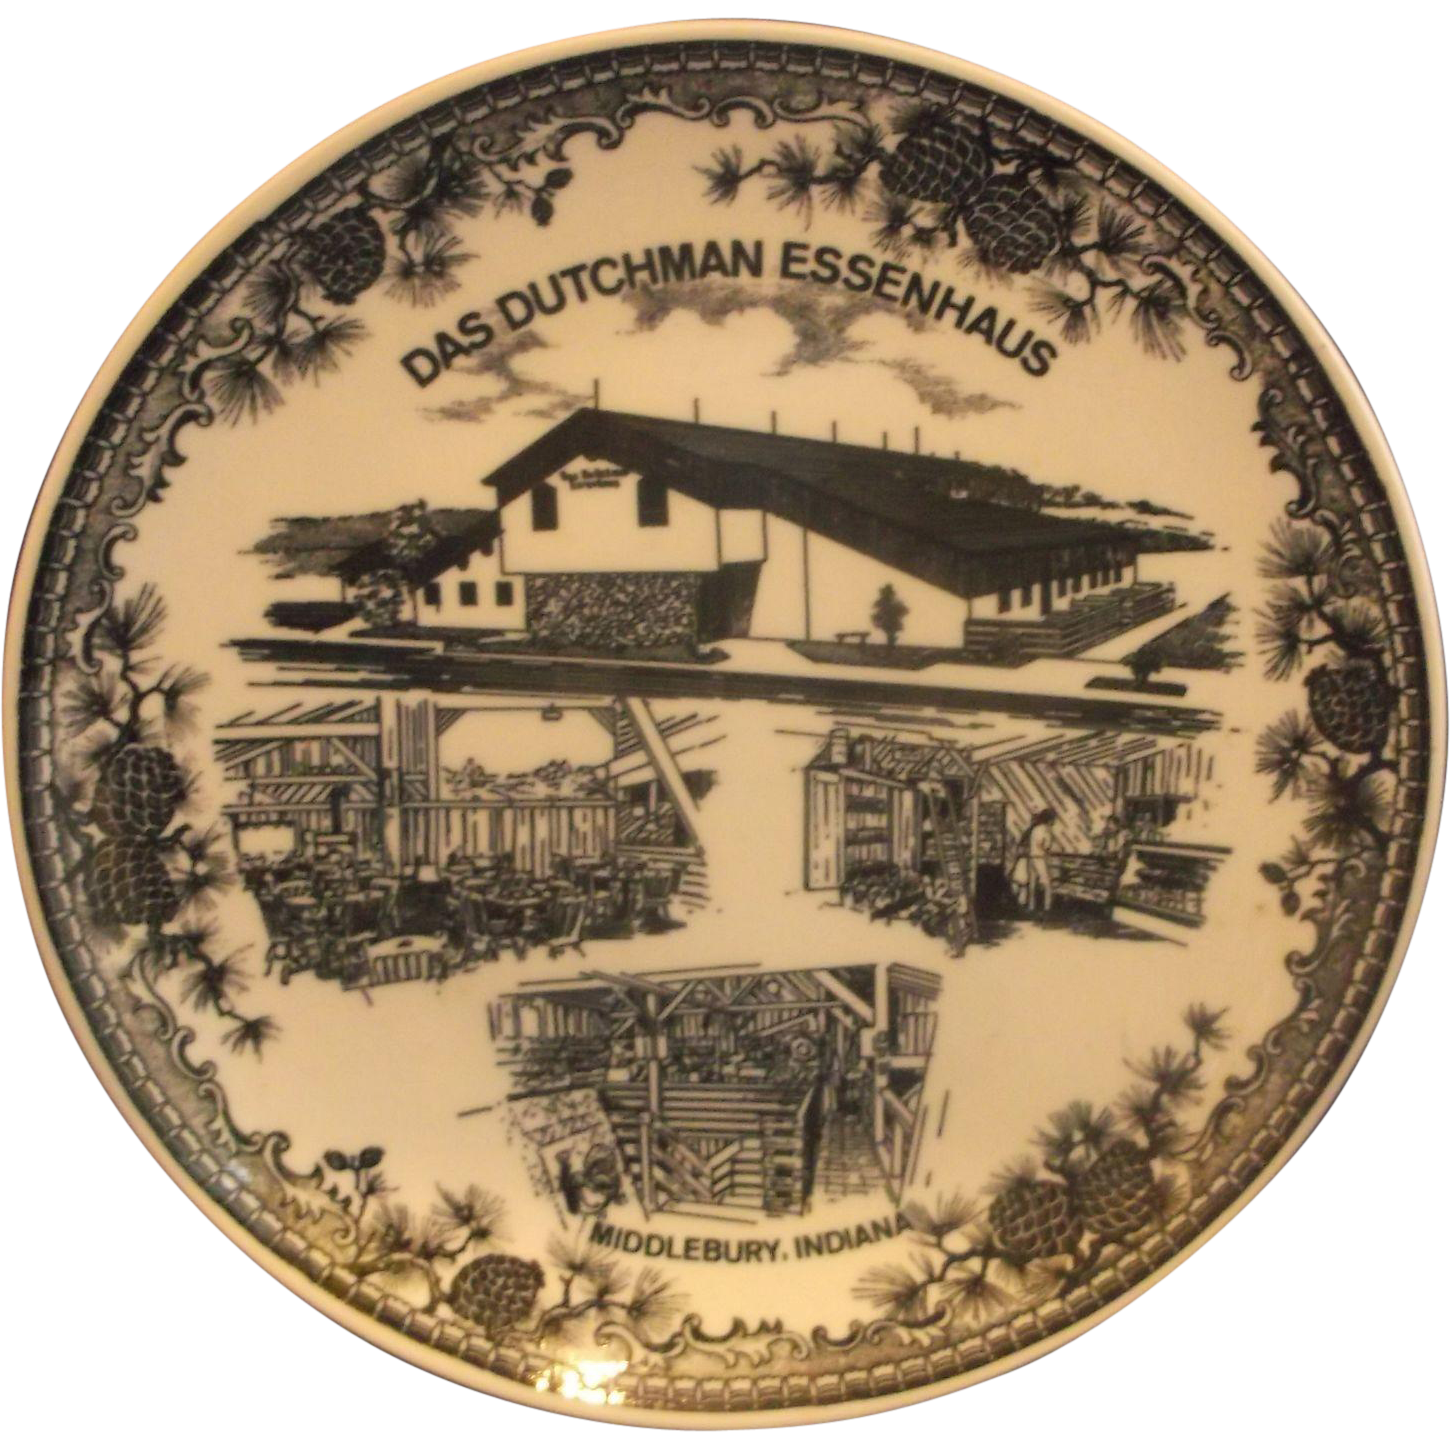 Das Dutchman Essenhaus Black Transferware Souvenir Plate Made in Japan